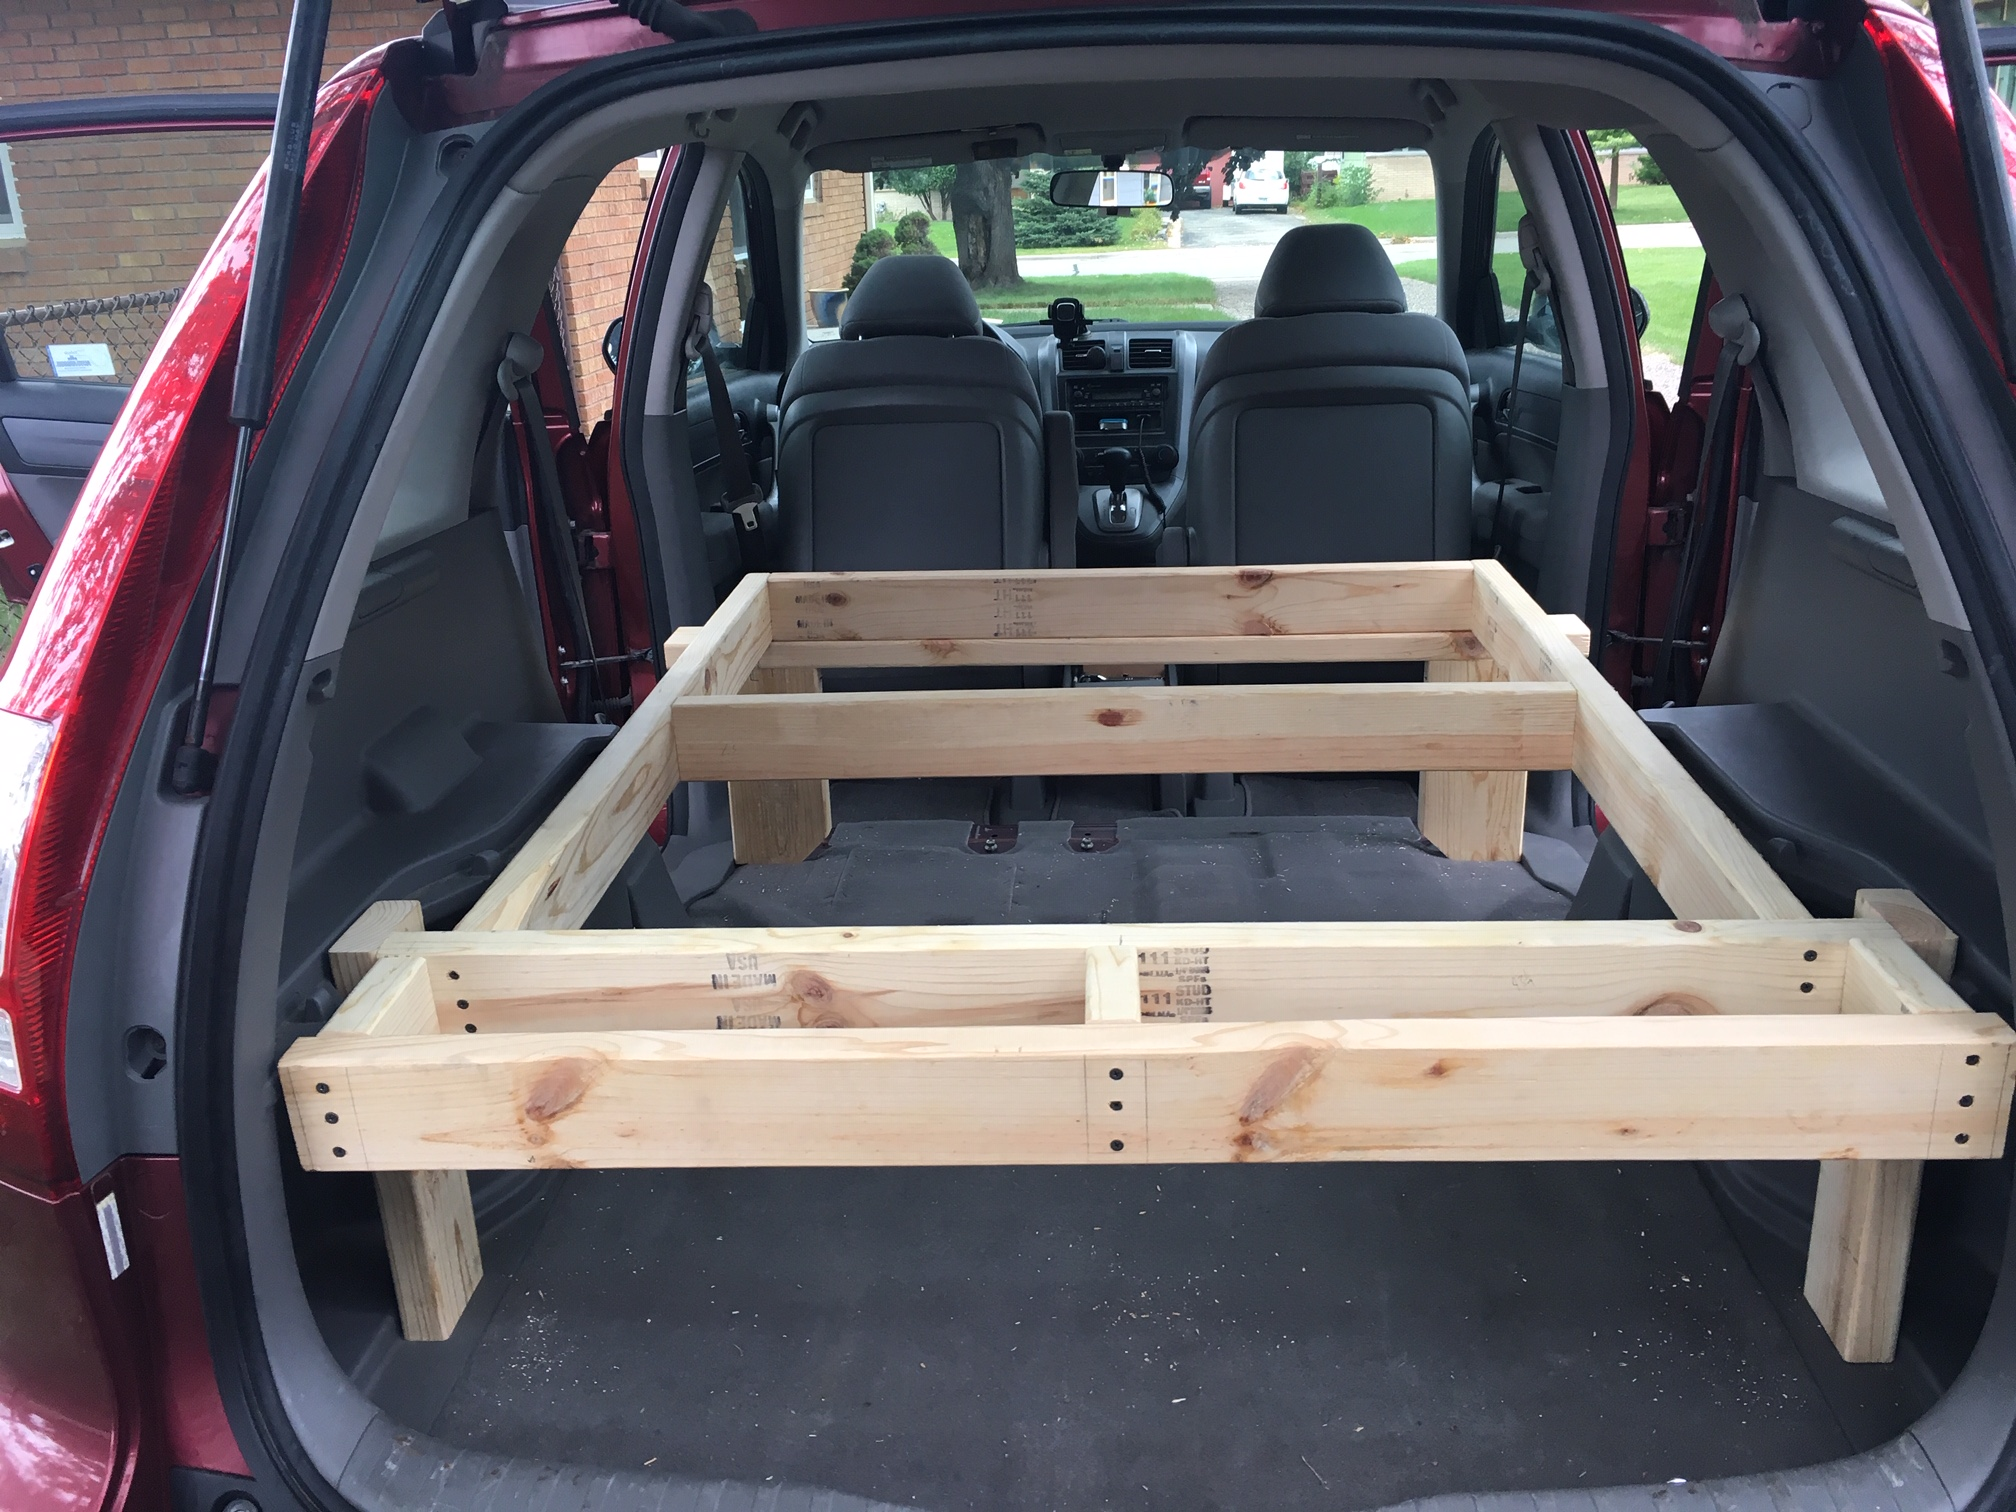 I replaced the two 2x4 legs nearer the front of the vehicle with 2x6s